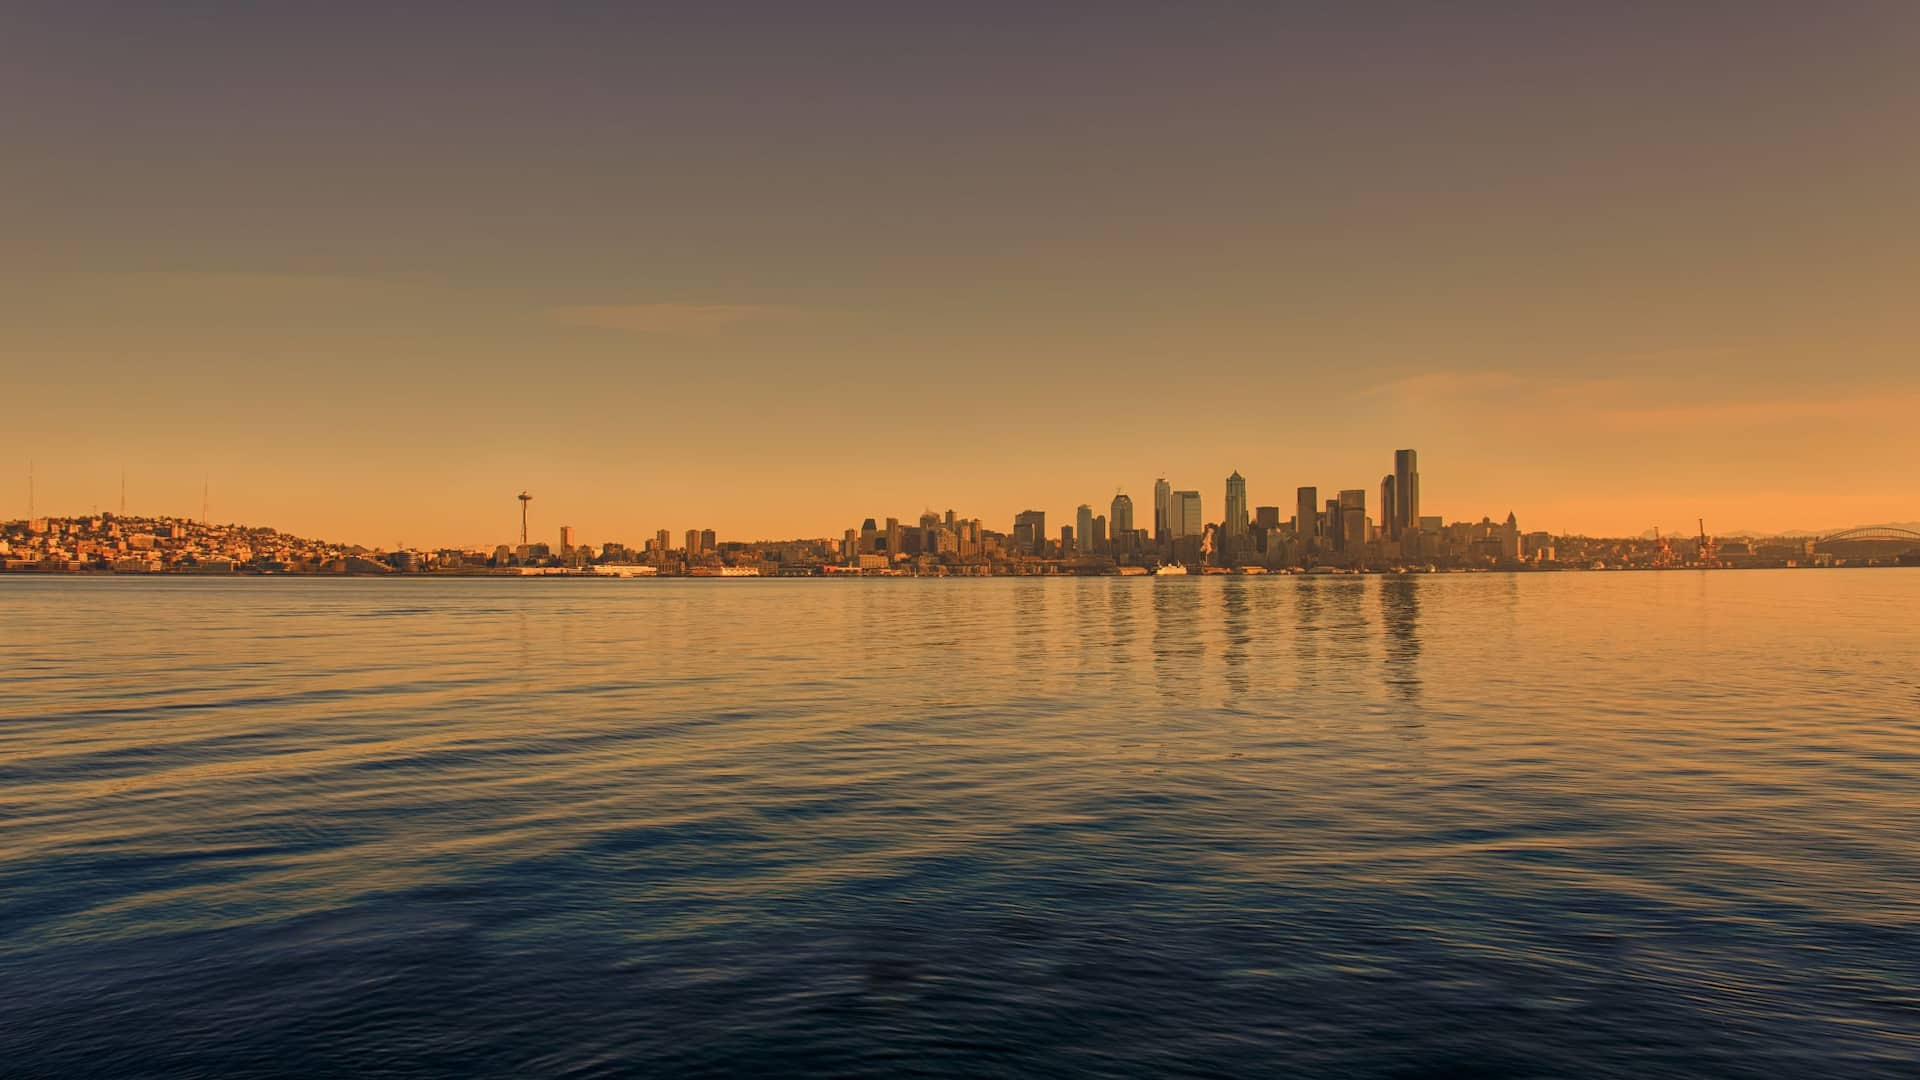 Sunrise skyline